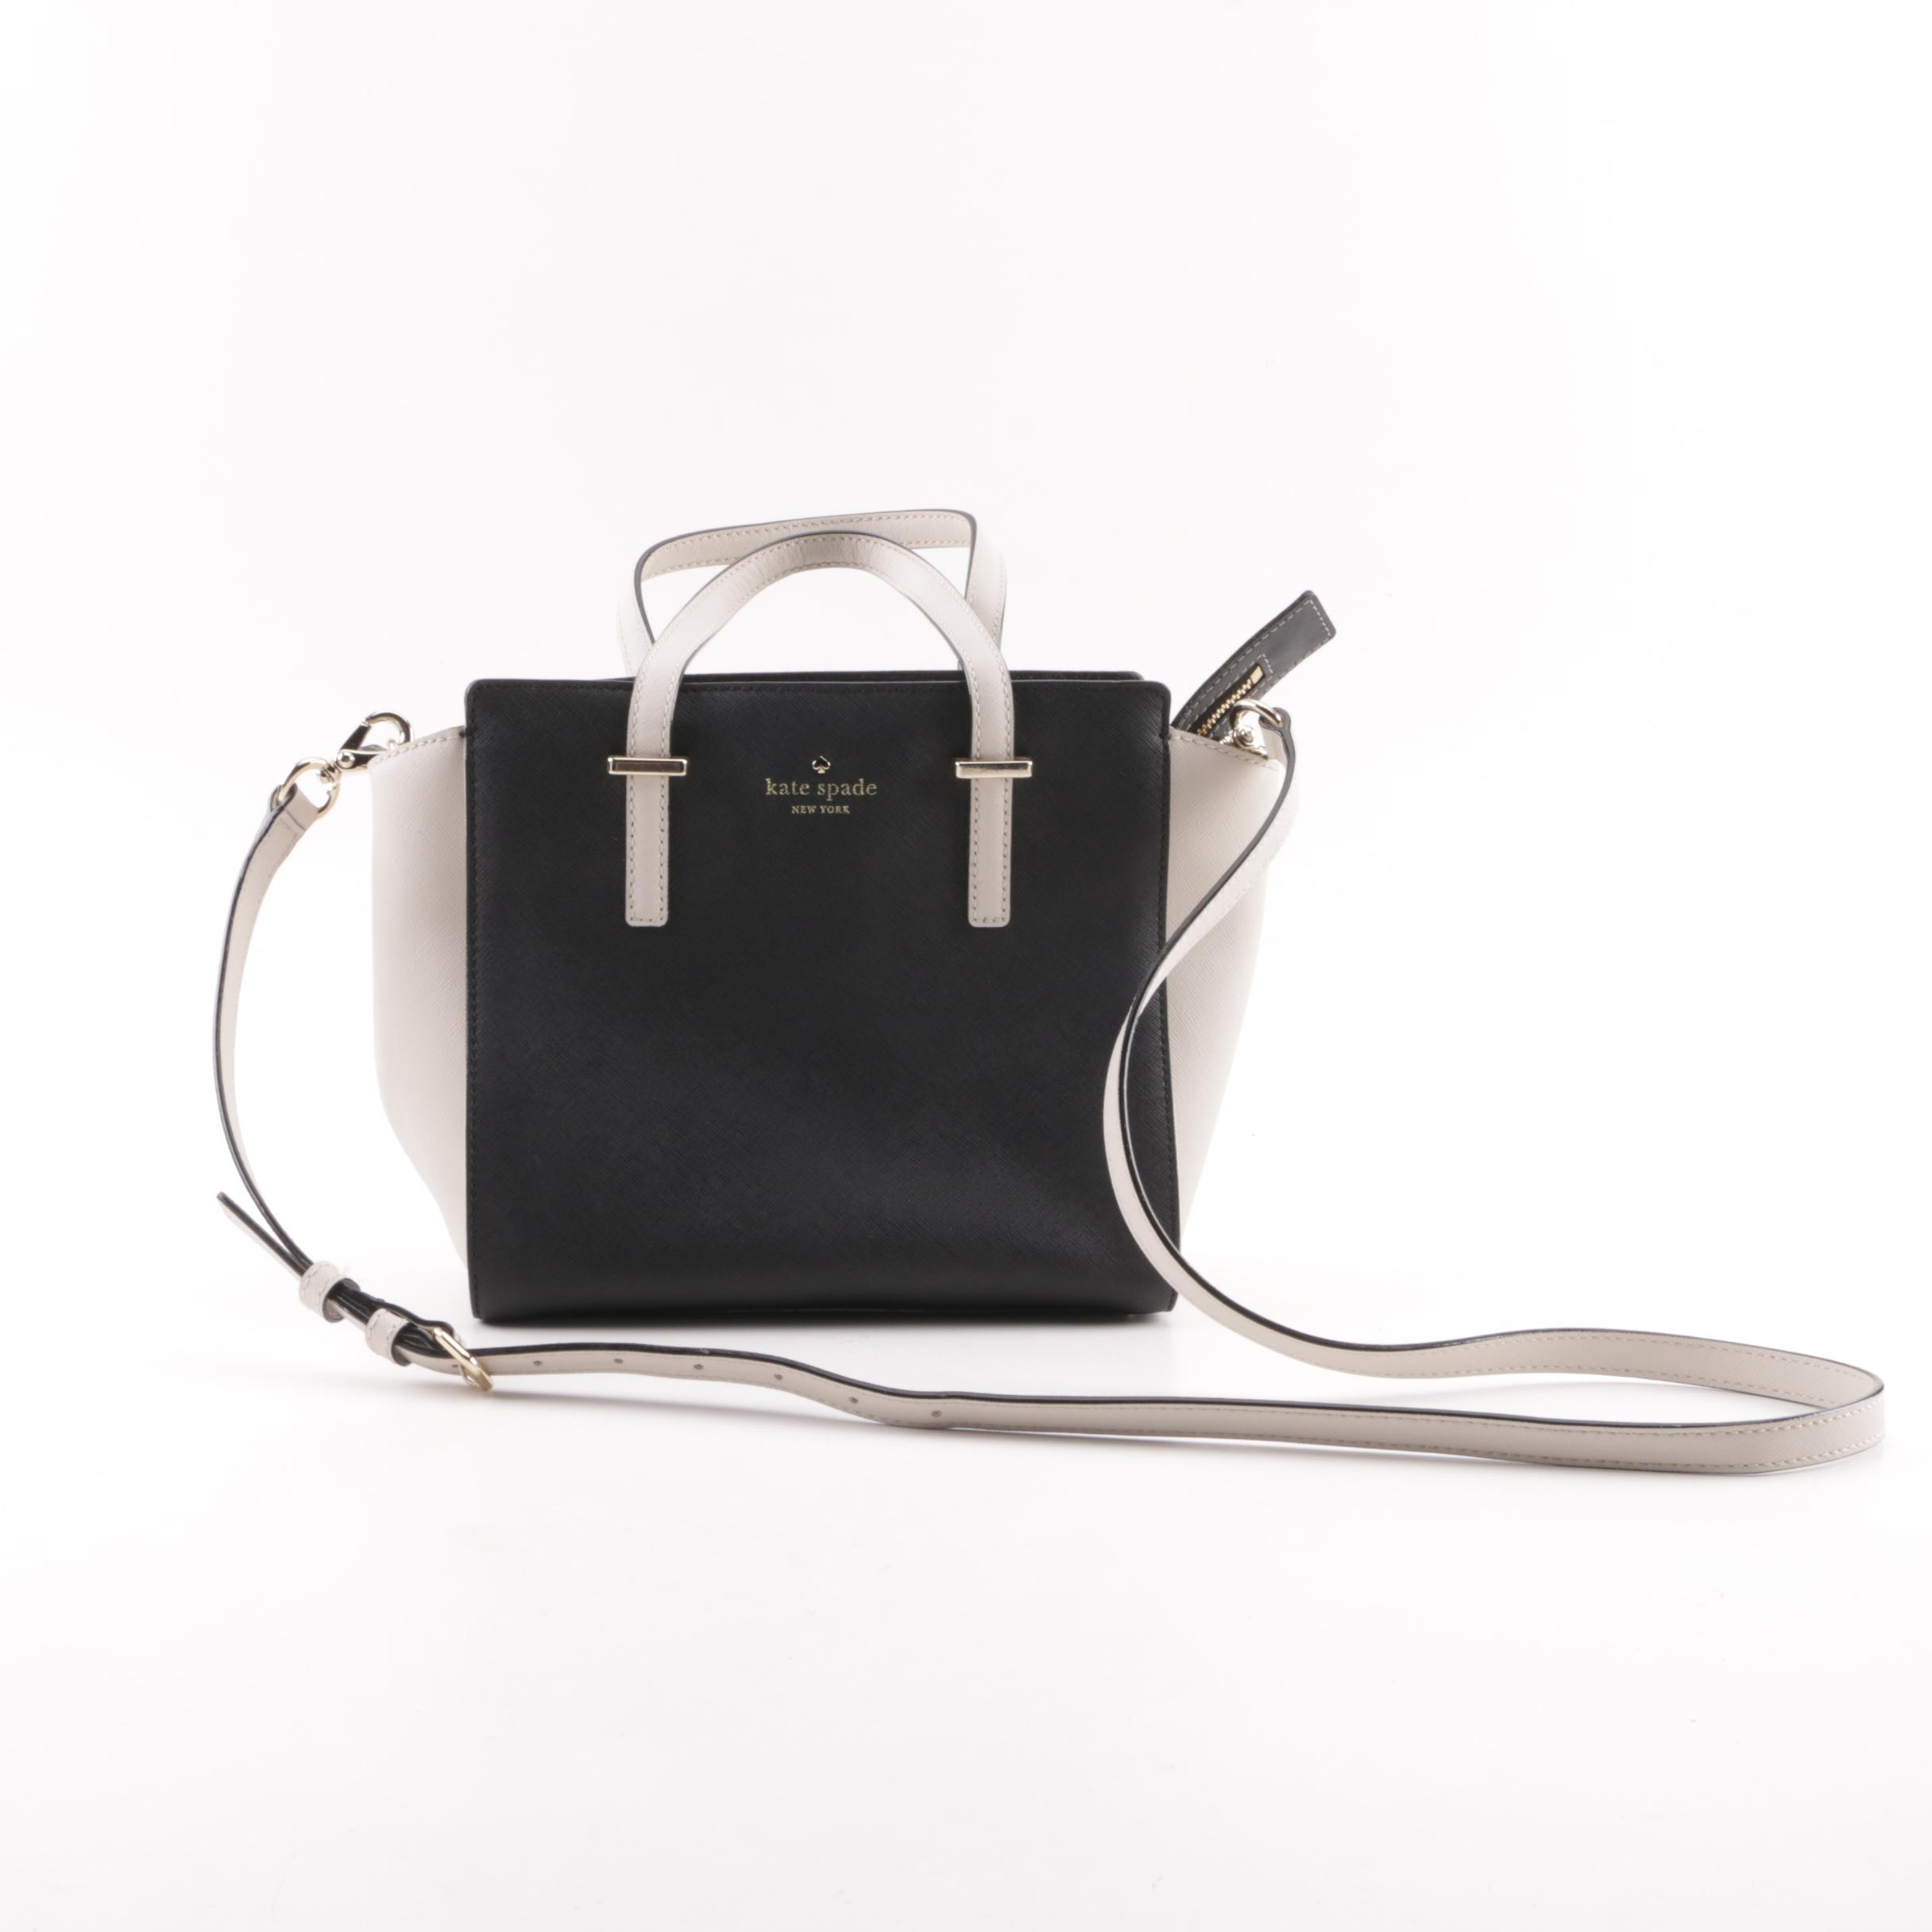 Kate Spade New York Black and Cream Crossgrain Leather Satchel